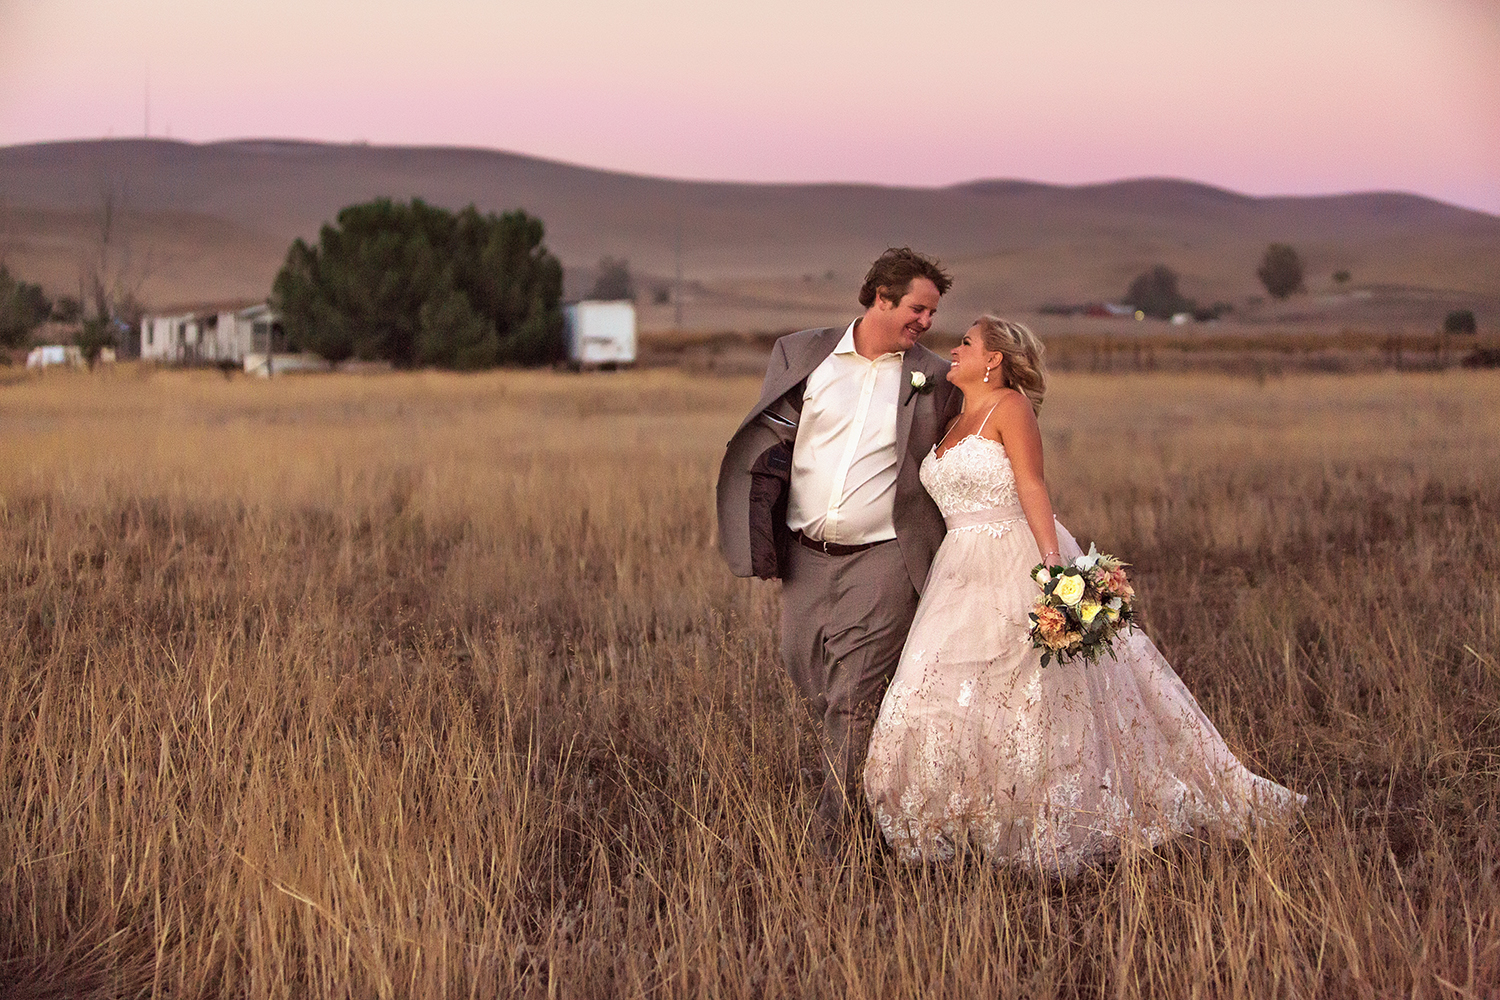 Dena_Rooney_Wedding_Photographer_Birchcreek_Ranch_Livermore_012.jpg